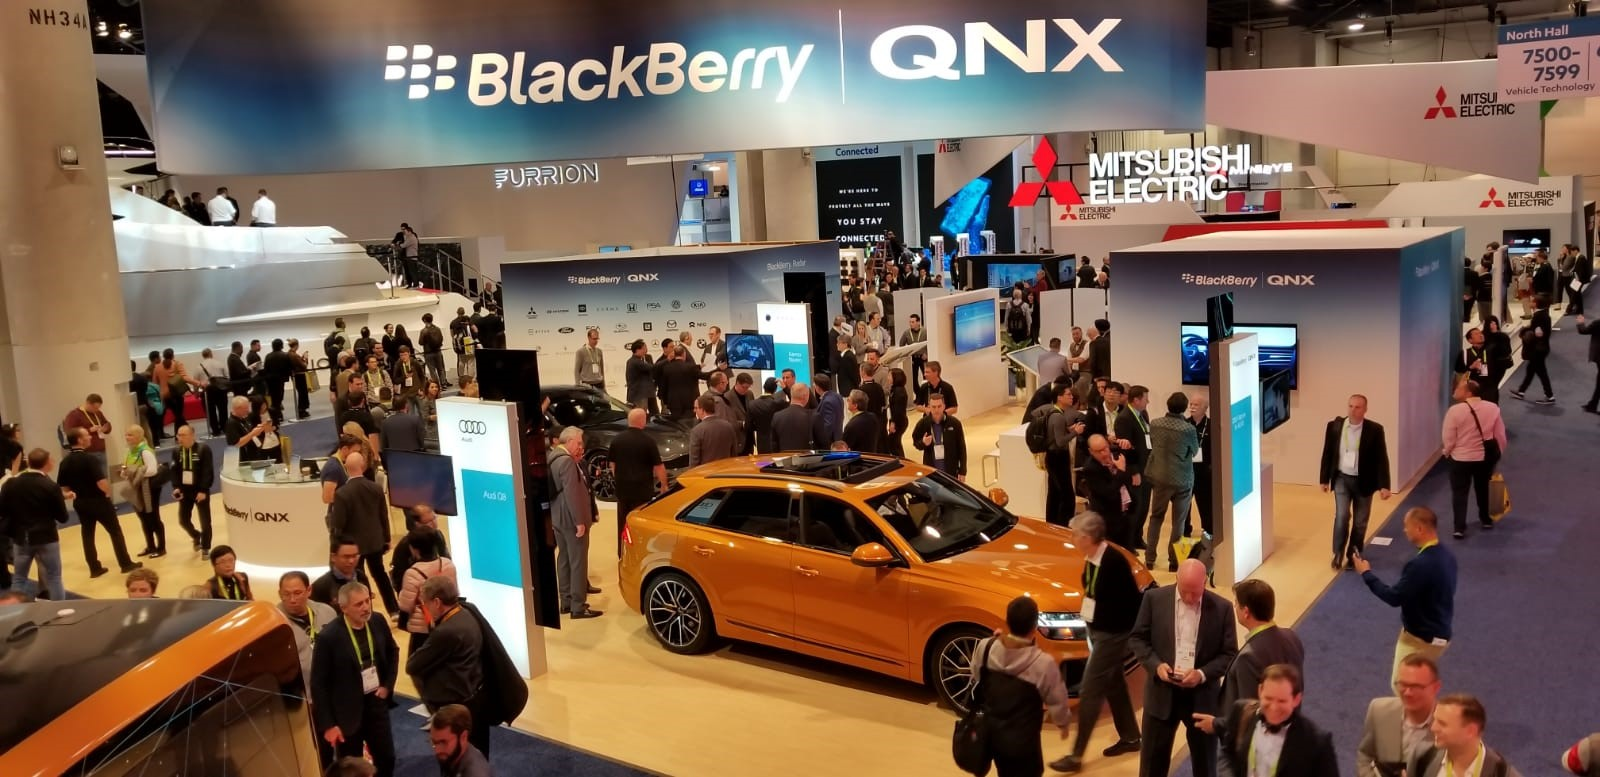 BlackBerry QNX highlighted its new QNX Platform for digital cockpits in two vehicles as CES 2019.